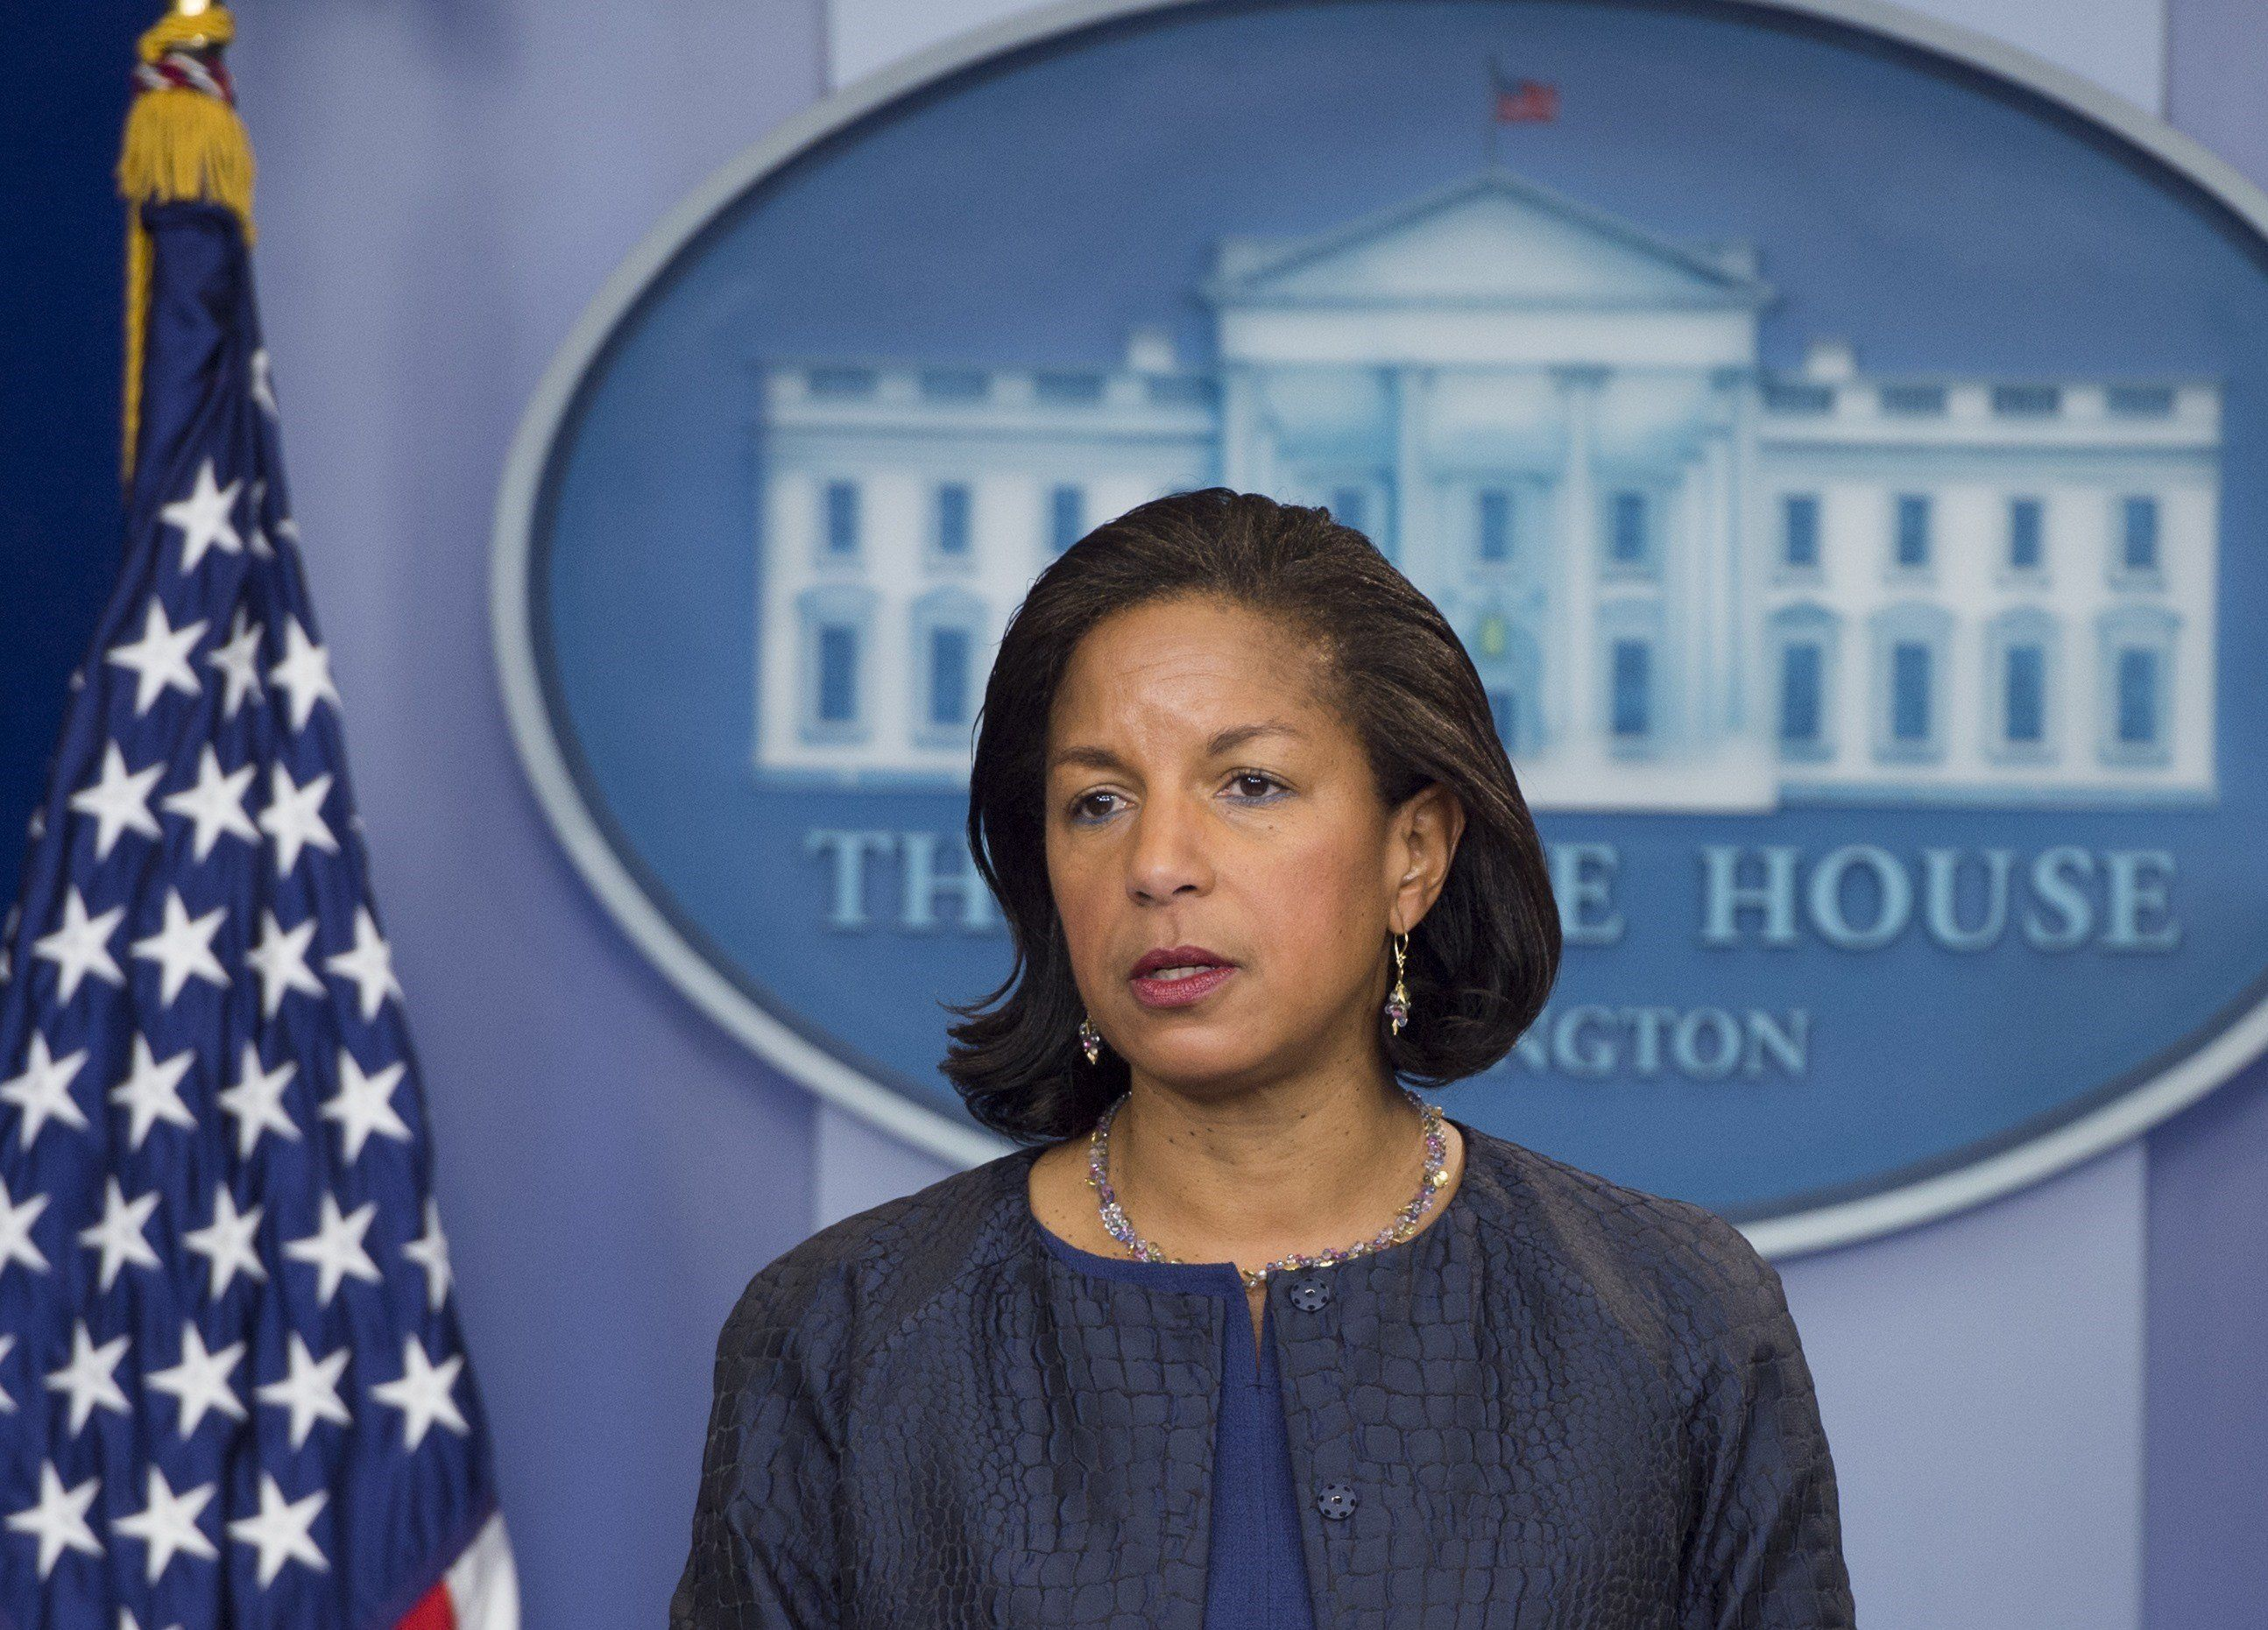 US National Security Advisor Susan Rice speaks about US President Barack Obama's upcoming travel to Turkey, the Philippines and Malaysia, during the Daily Press Briefing at the White House in Washington, DC, November 12, 2015. AFP PHOTO / SAUL LOEB        (Photo credit should read SAUL LOEB/AFP/Getty Images)